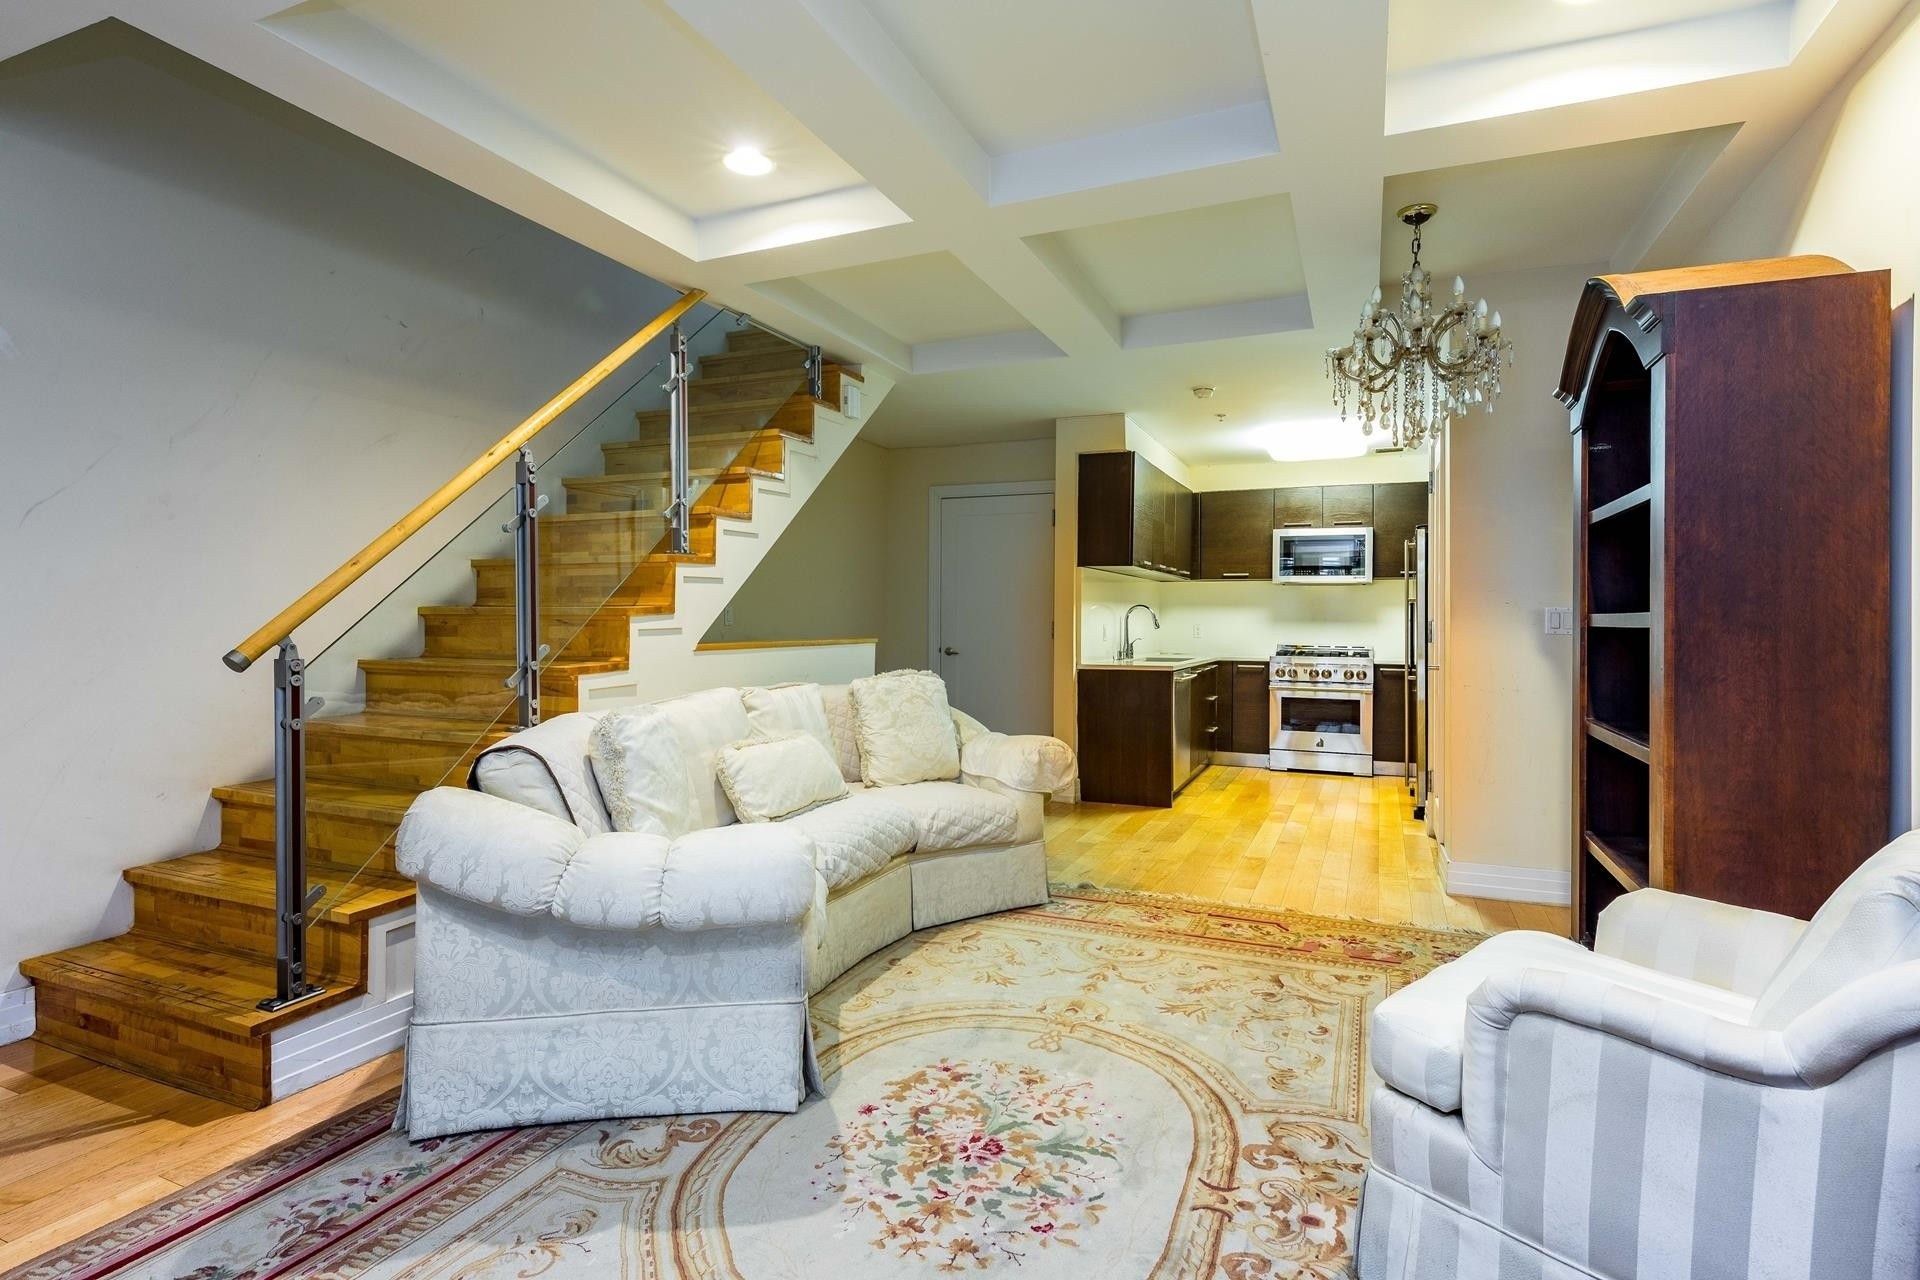 3. Condominiums for Sale at 64-05 Yellowstone Boulevard, 108 Forest Hills, Queens, NY 11375